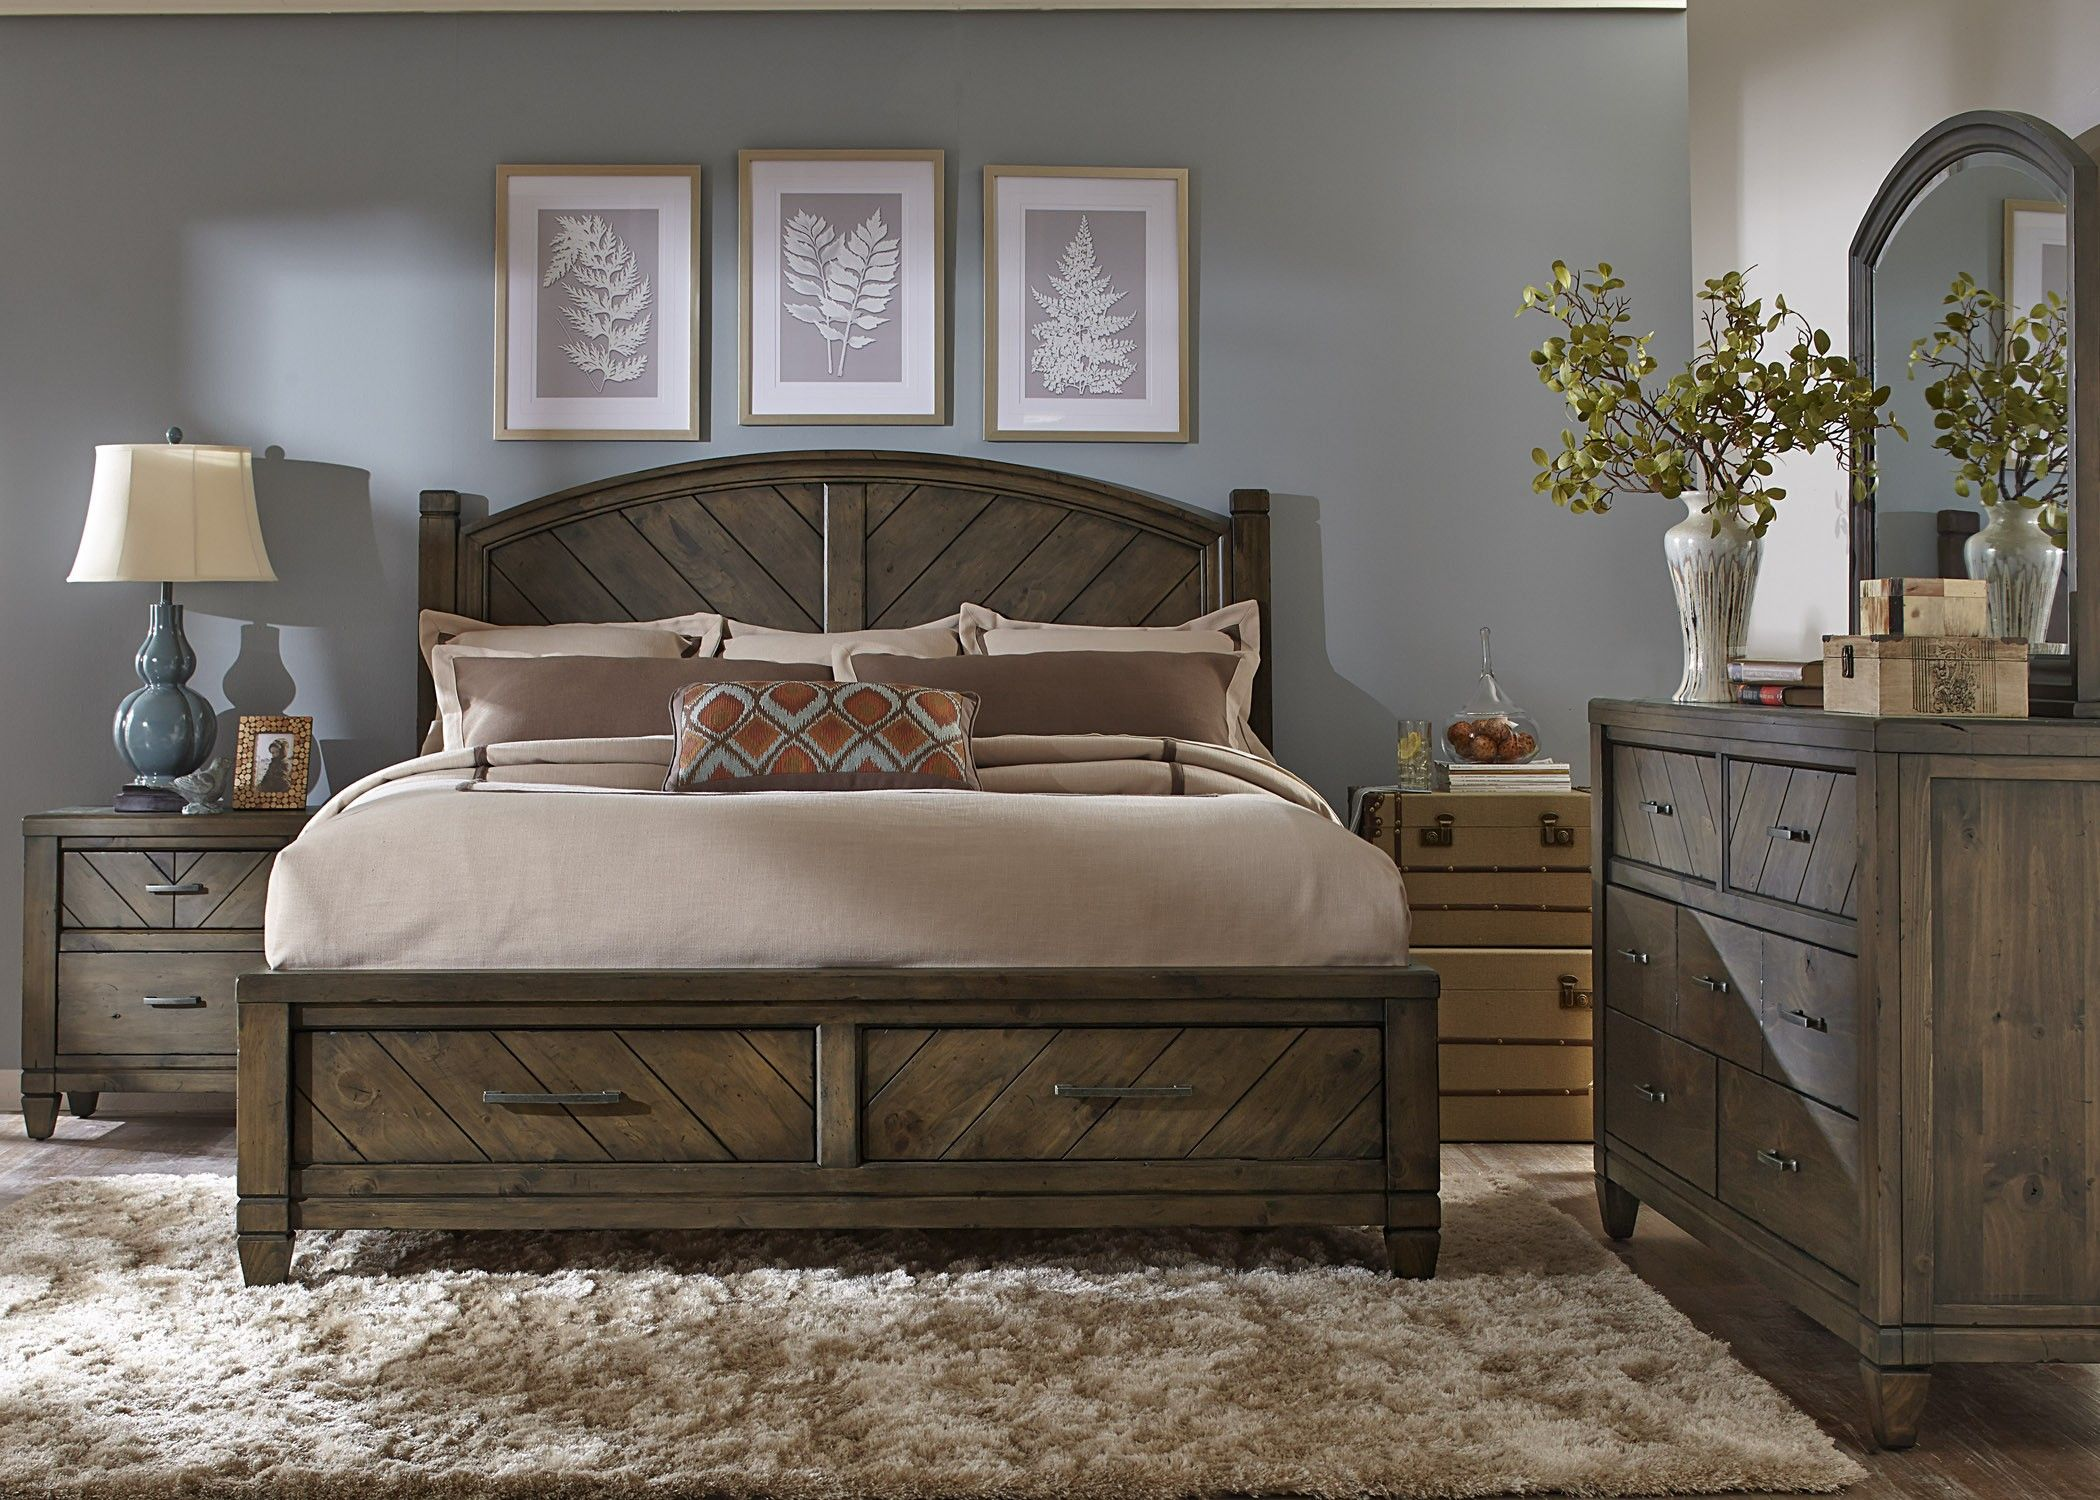 Modern Country Bedroom Set | Bed frame with storage, Modern ...